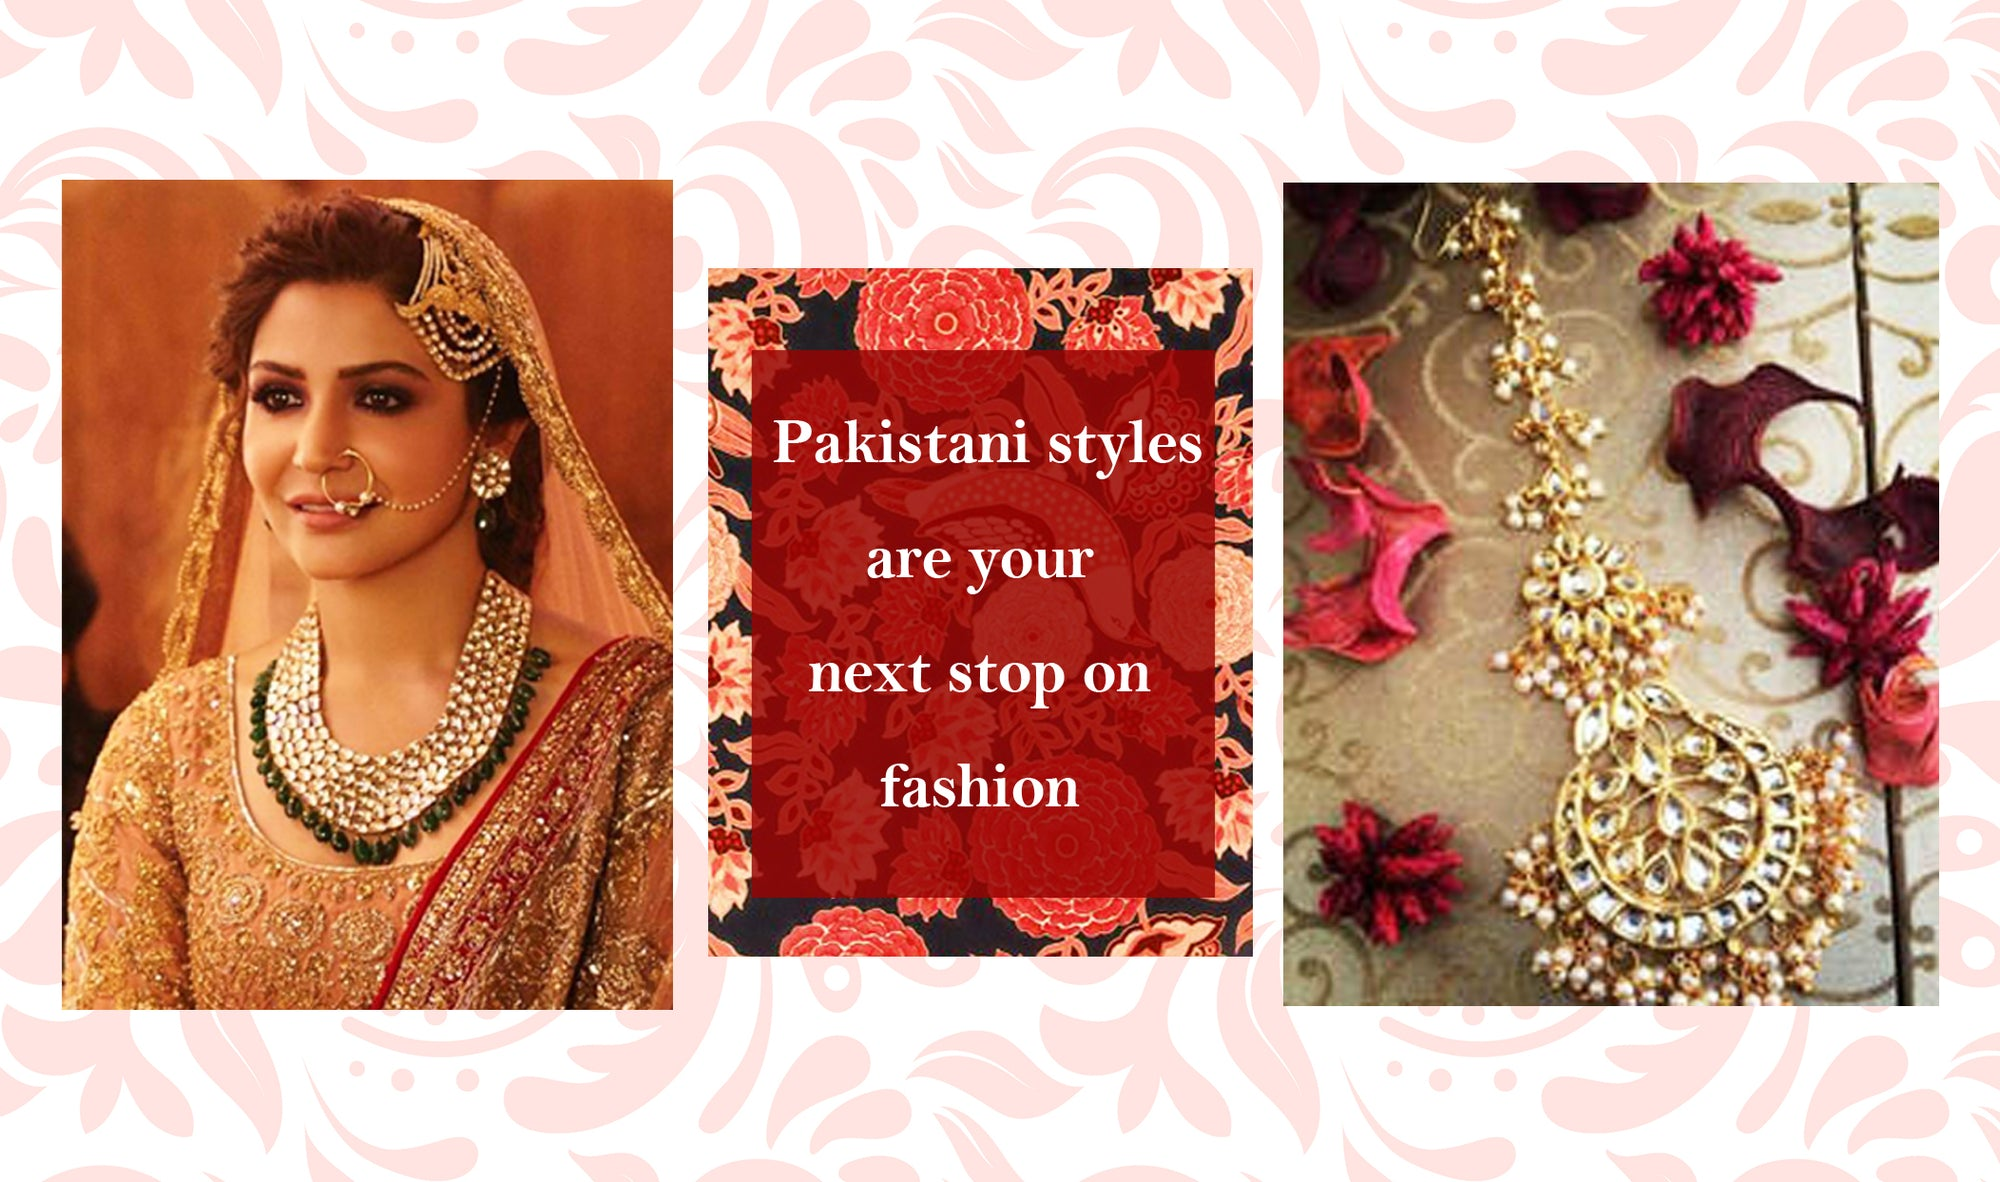 Want vogue? These Pakistani styles are your next stop on fashion